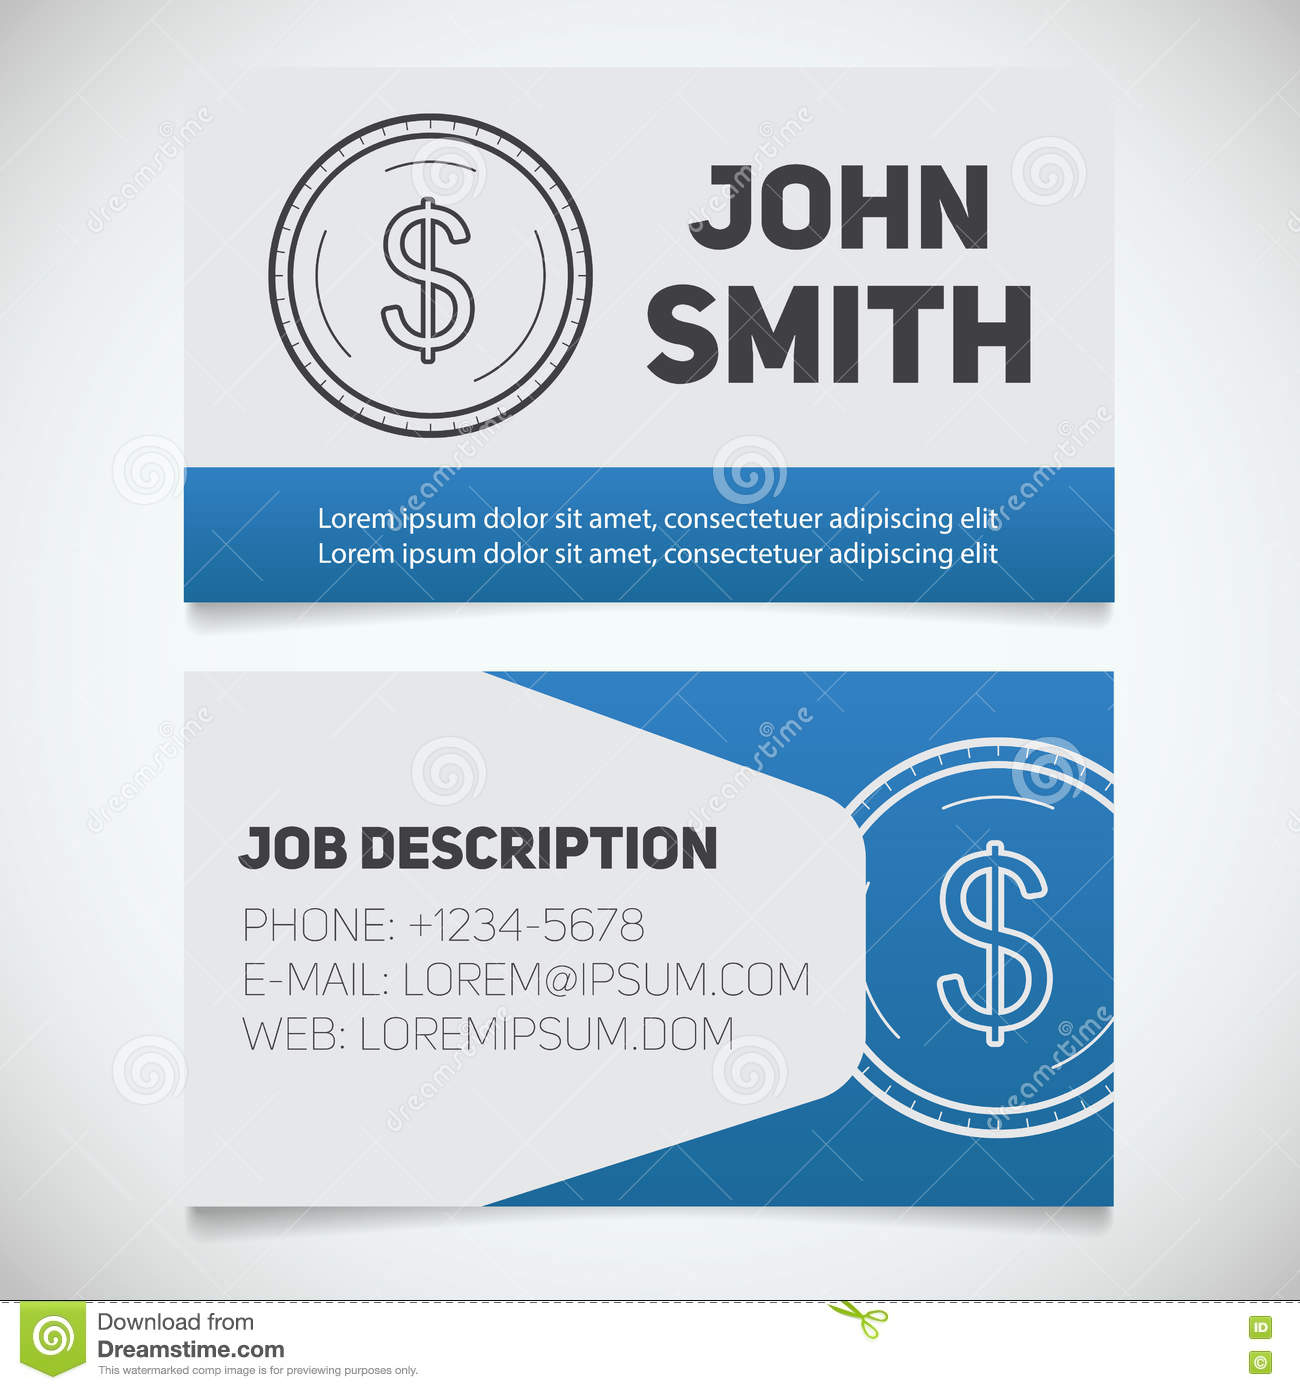 Business card print template with dollar coin logo stock vector download business card print template with dollar coin logo stock vector illustration of emblem reheart Gallery